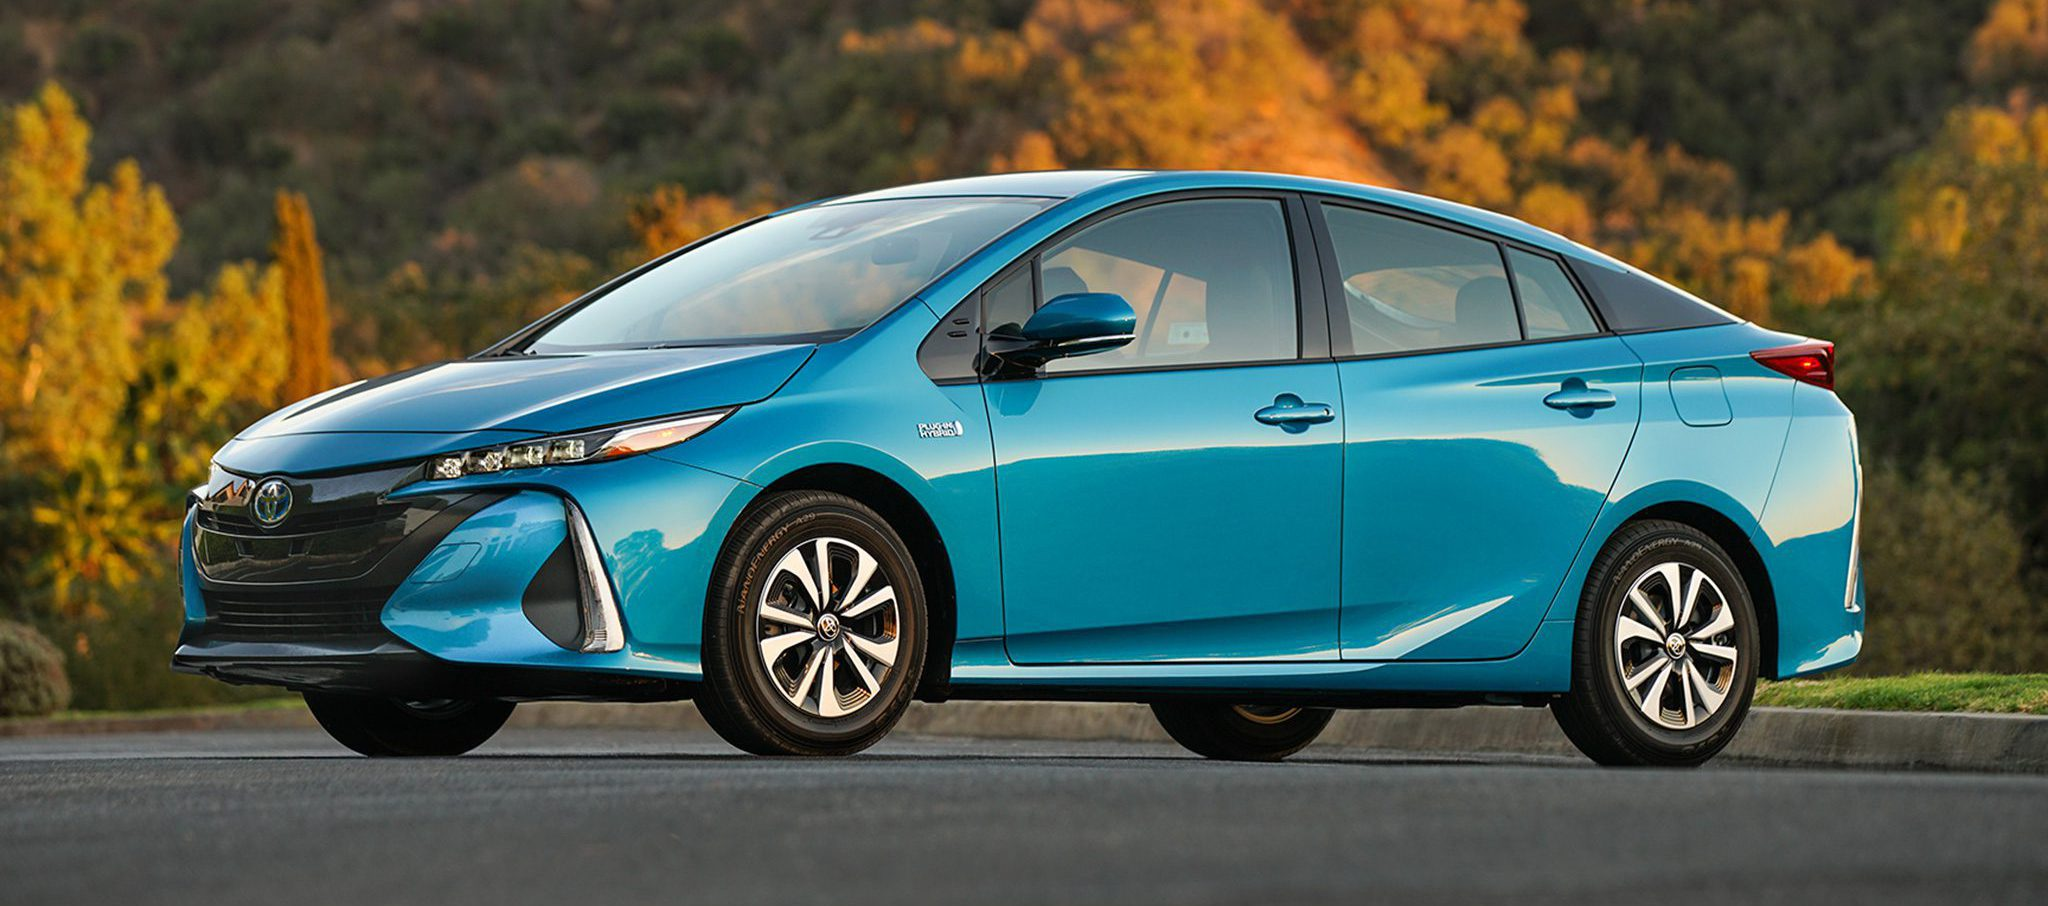 Toyota Announces Major Expansion Of Its Electric Car Plans 10 New Bevs All Models To Have Motors